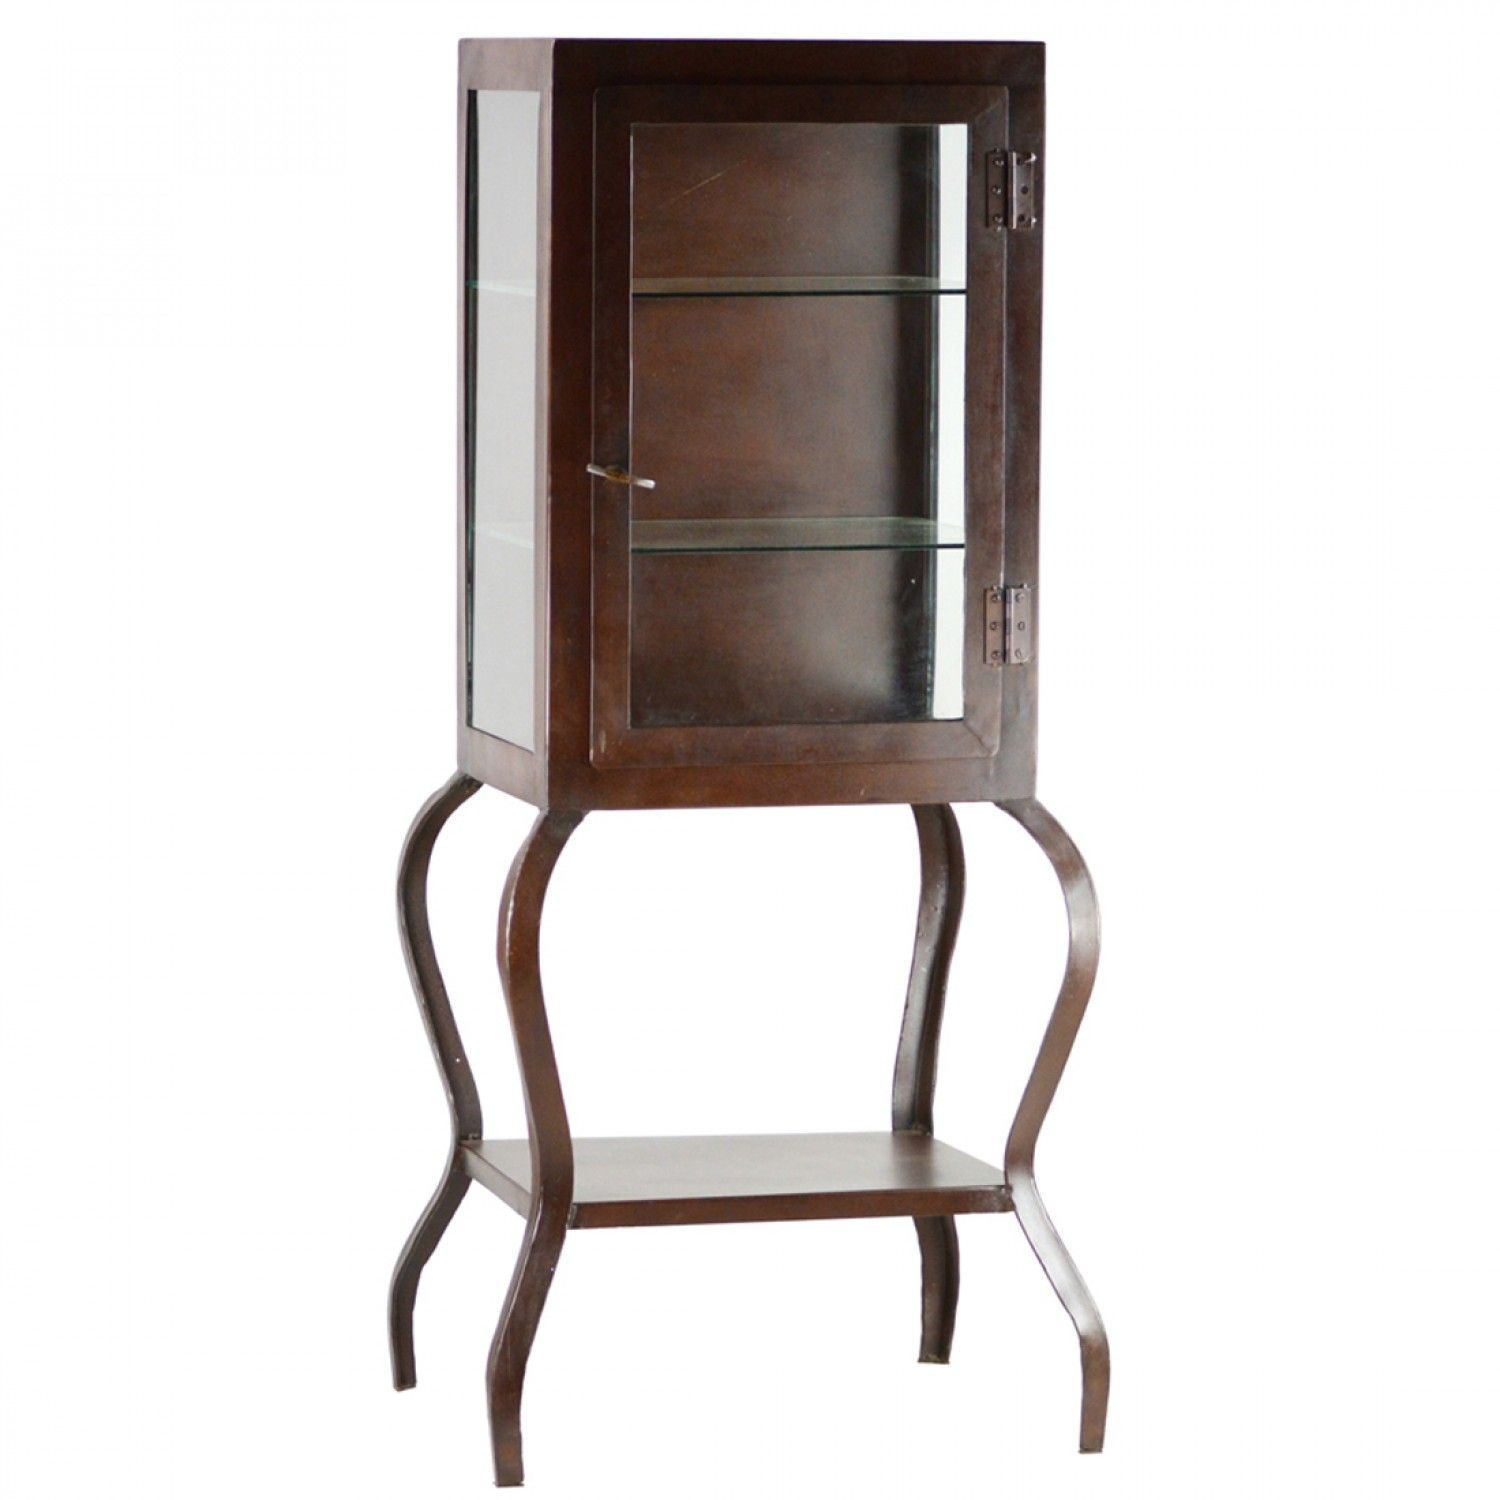 Glass Showcase in Metallic Brown Finish $790.00 #thebellacottage #shabbychic #metallicbrown